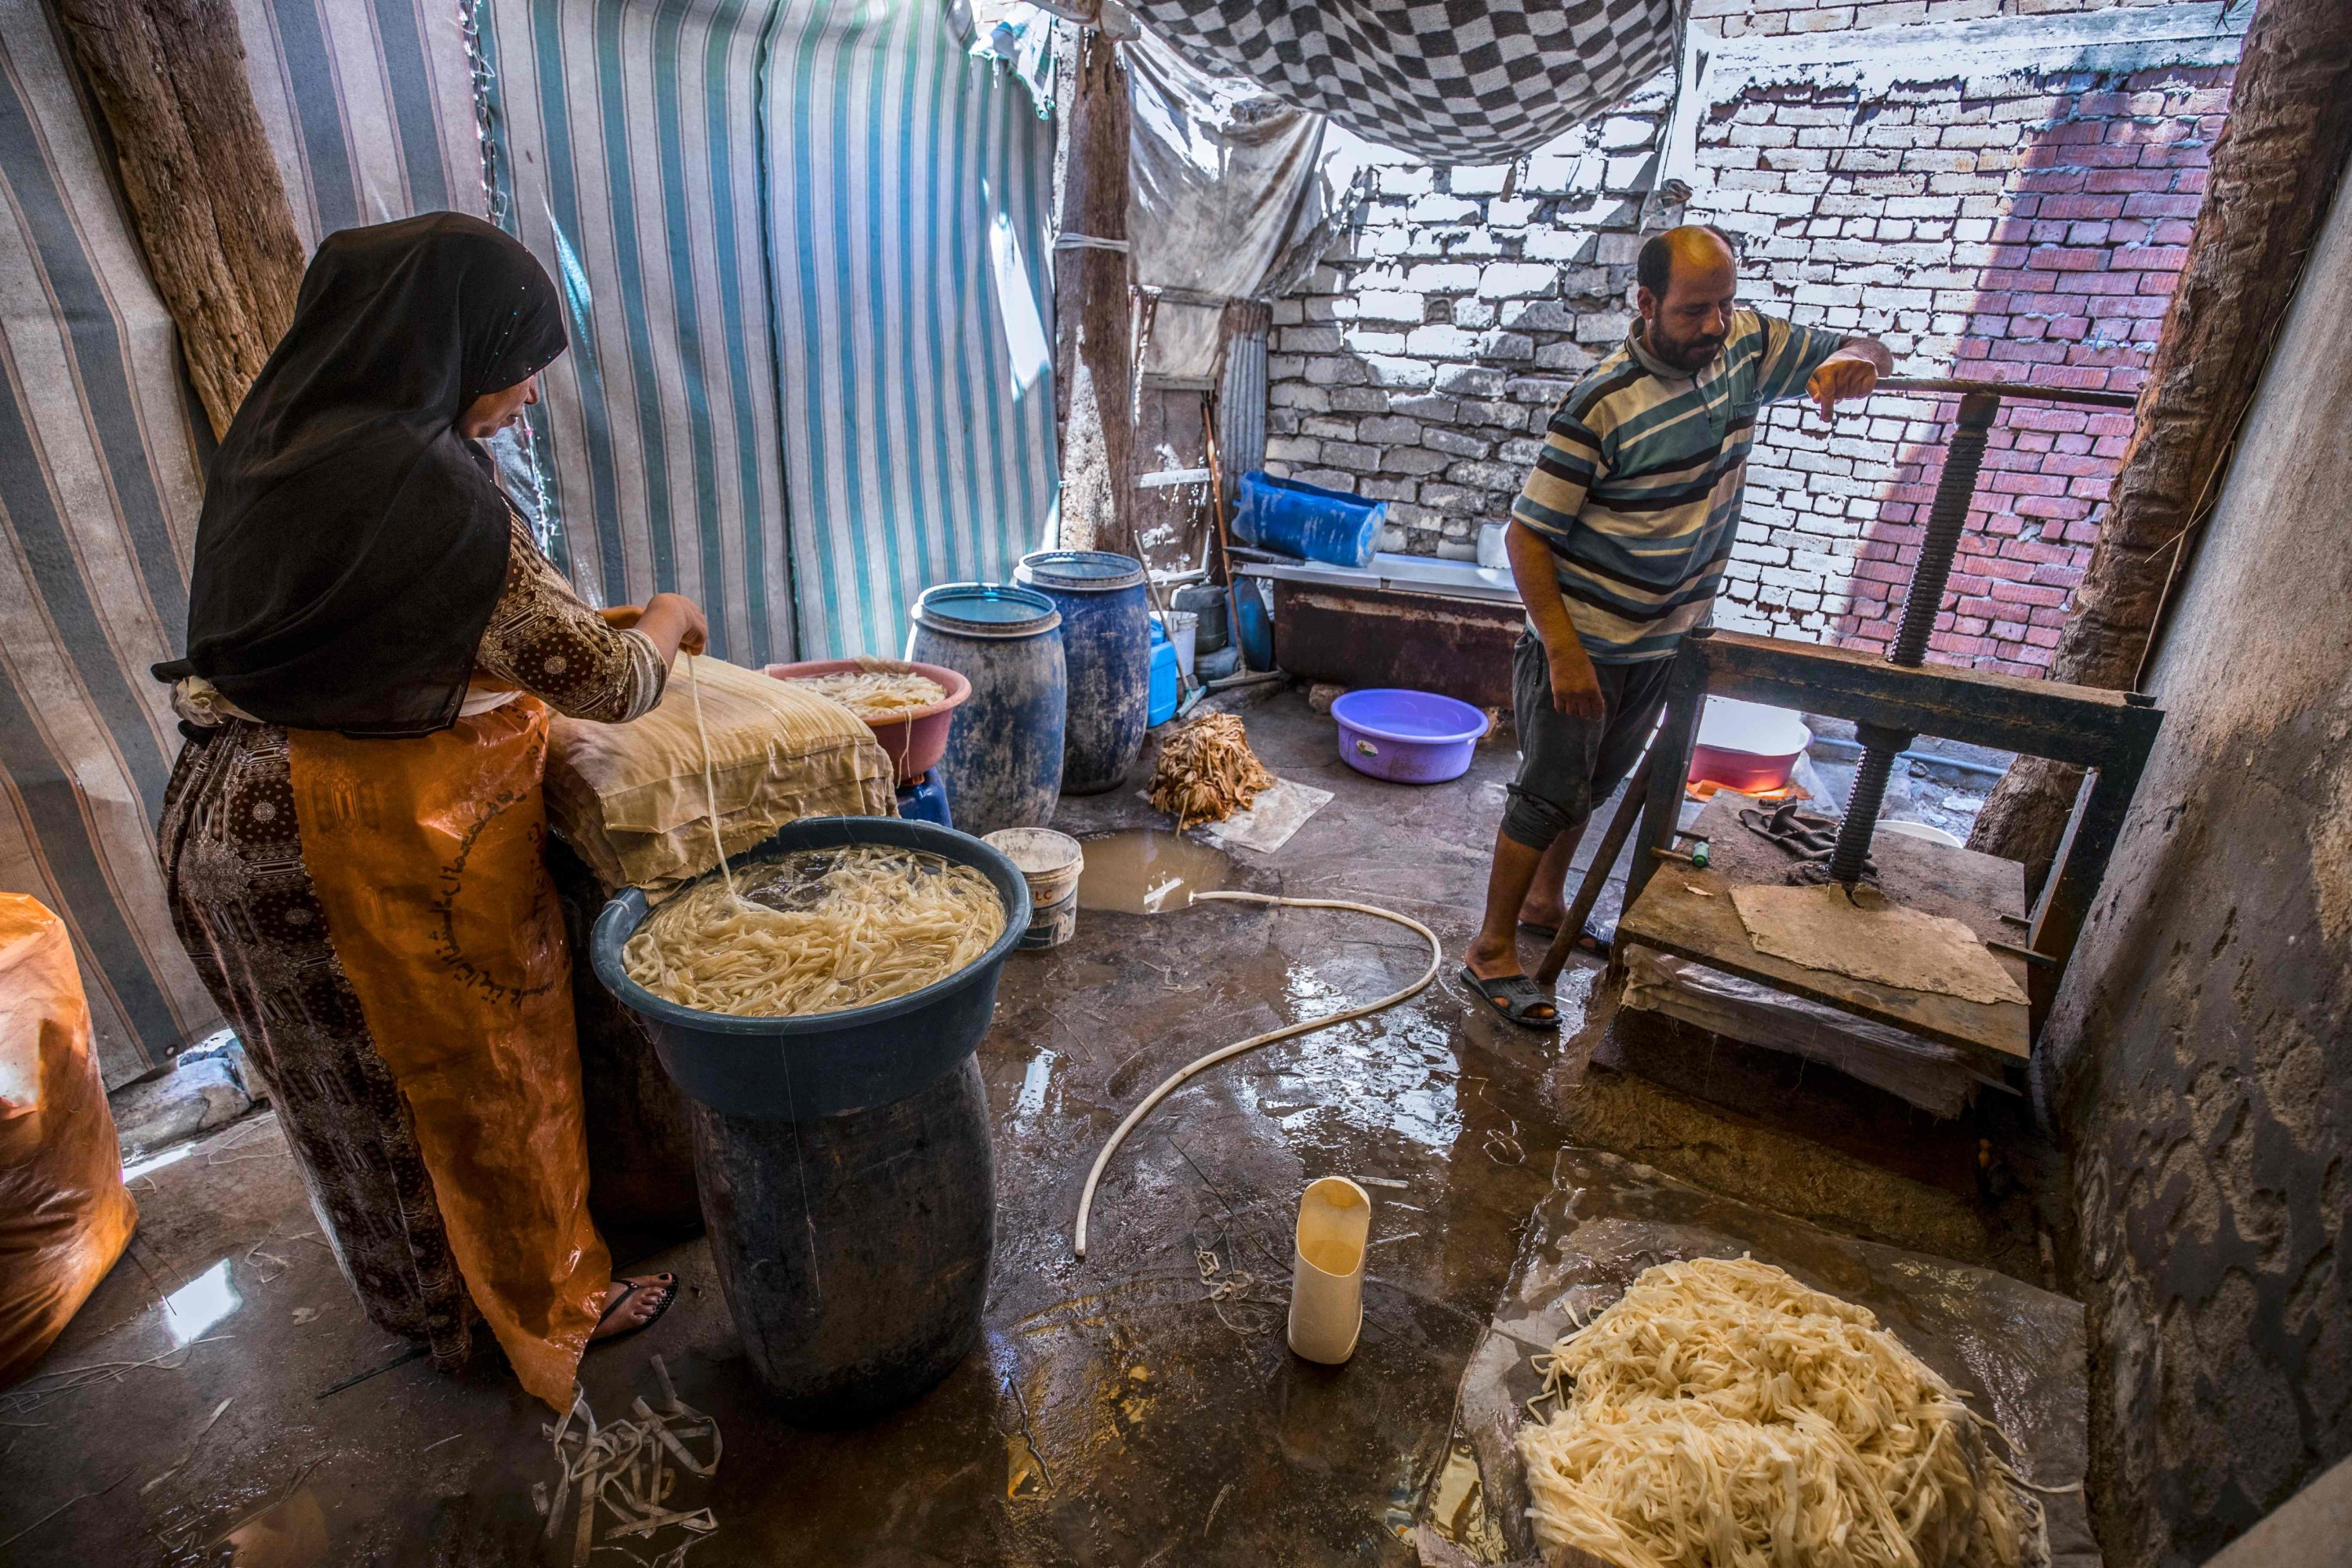 Abdel Mobdi Moussalam, 48 (R) and an assistant prepare soaked papyrus strips before compression and drying at the workshop in the village of al-Qaramous in Sharqiyah province, in Egypt